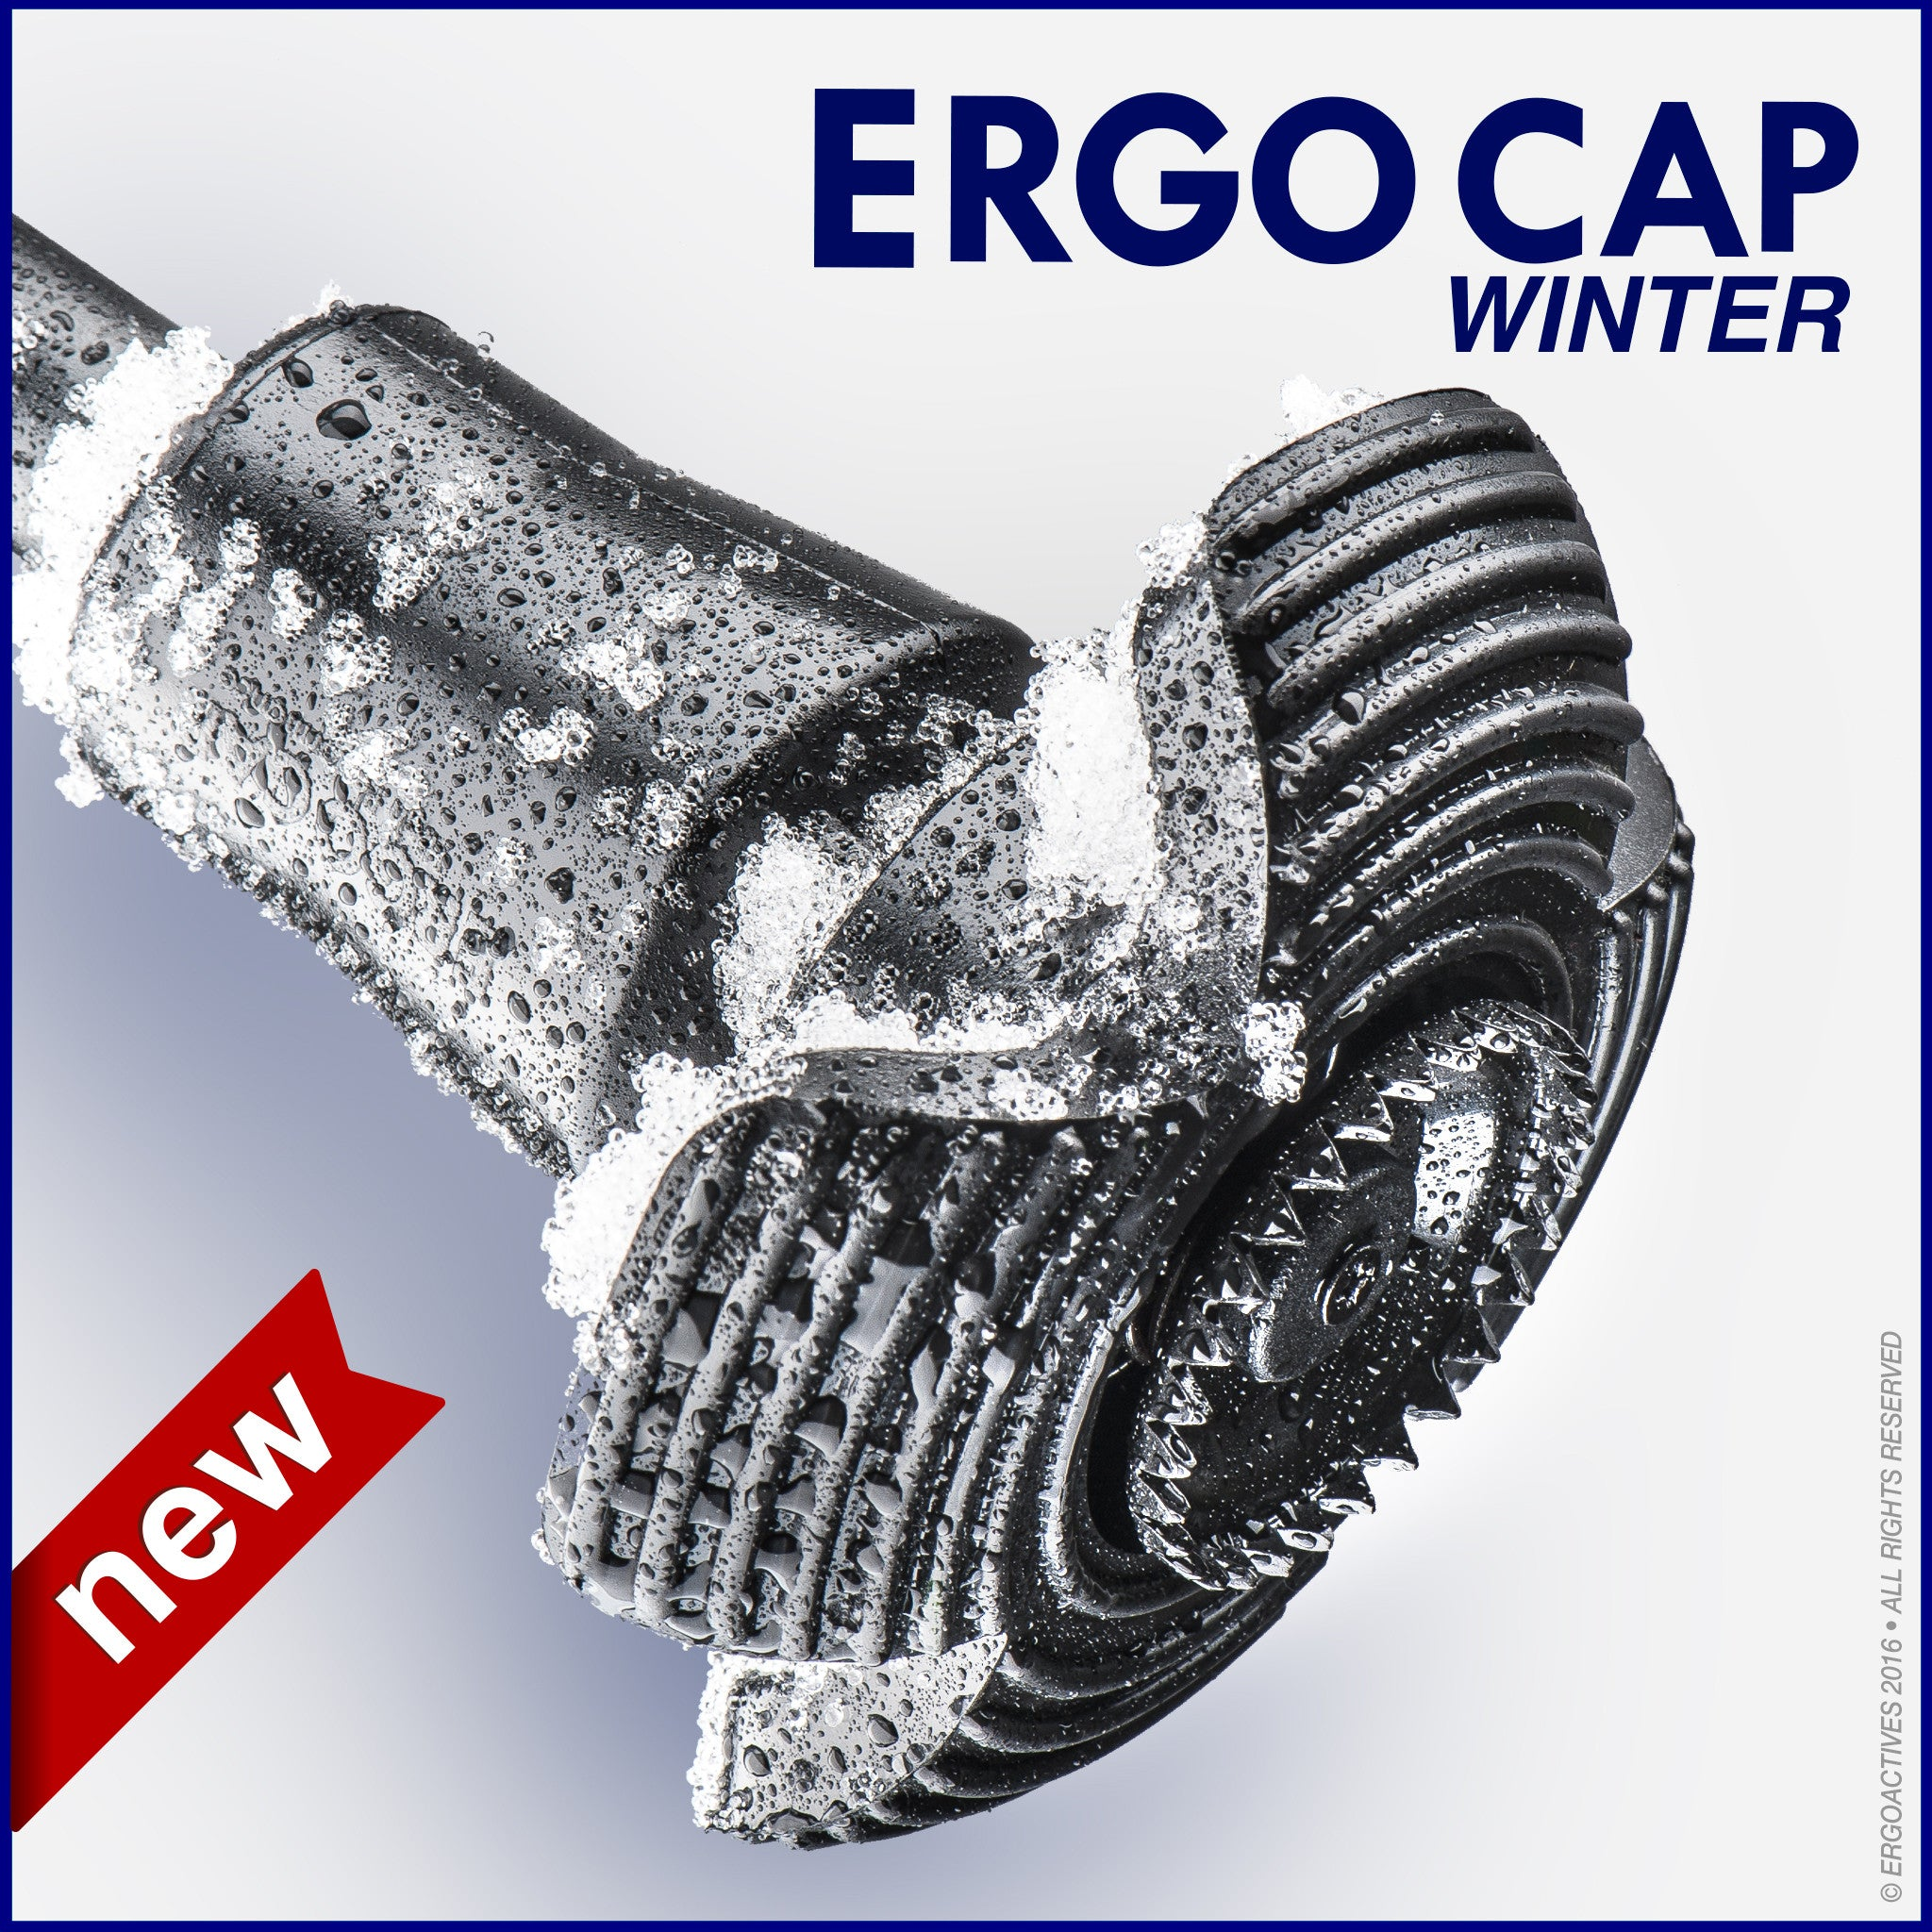 Brand New! Ergocap Winter Ltd.